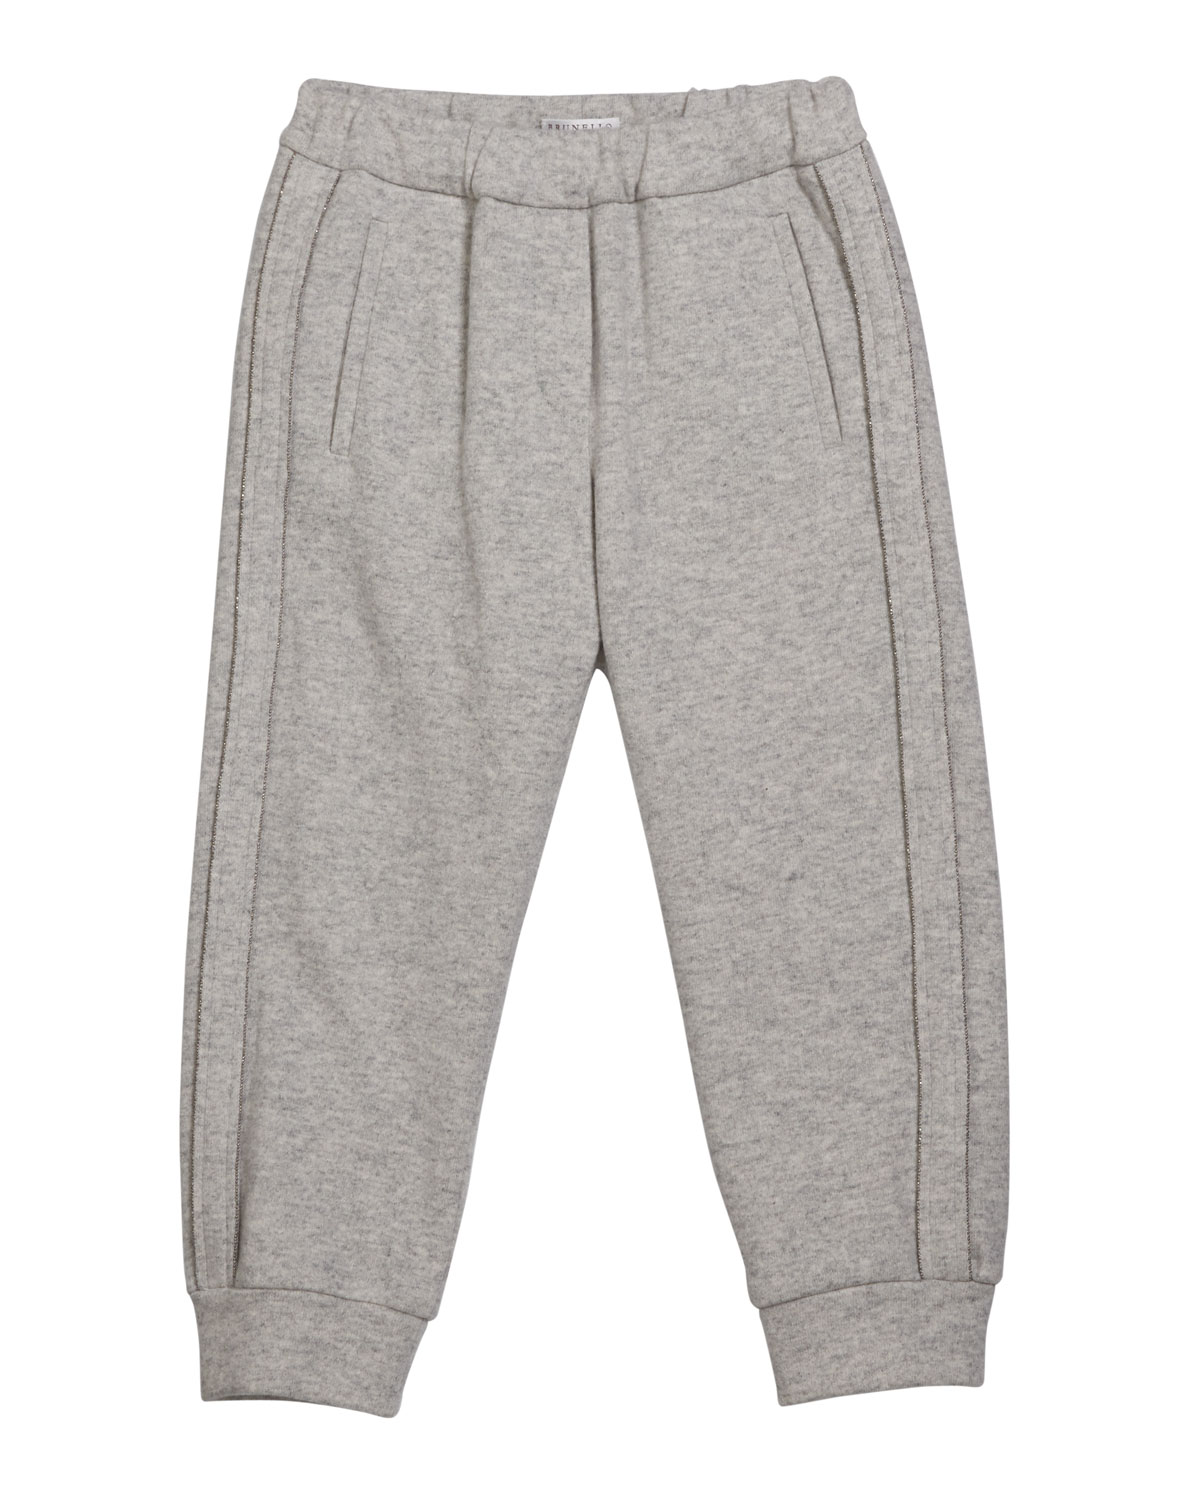 Brunello Cucinelli Cashmeres GIRL'S CASHMERE JOGGER PANTS WITH MONILI PIPING